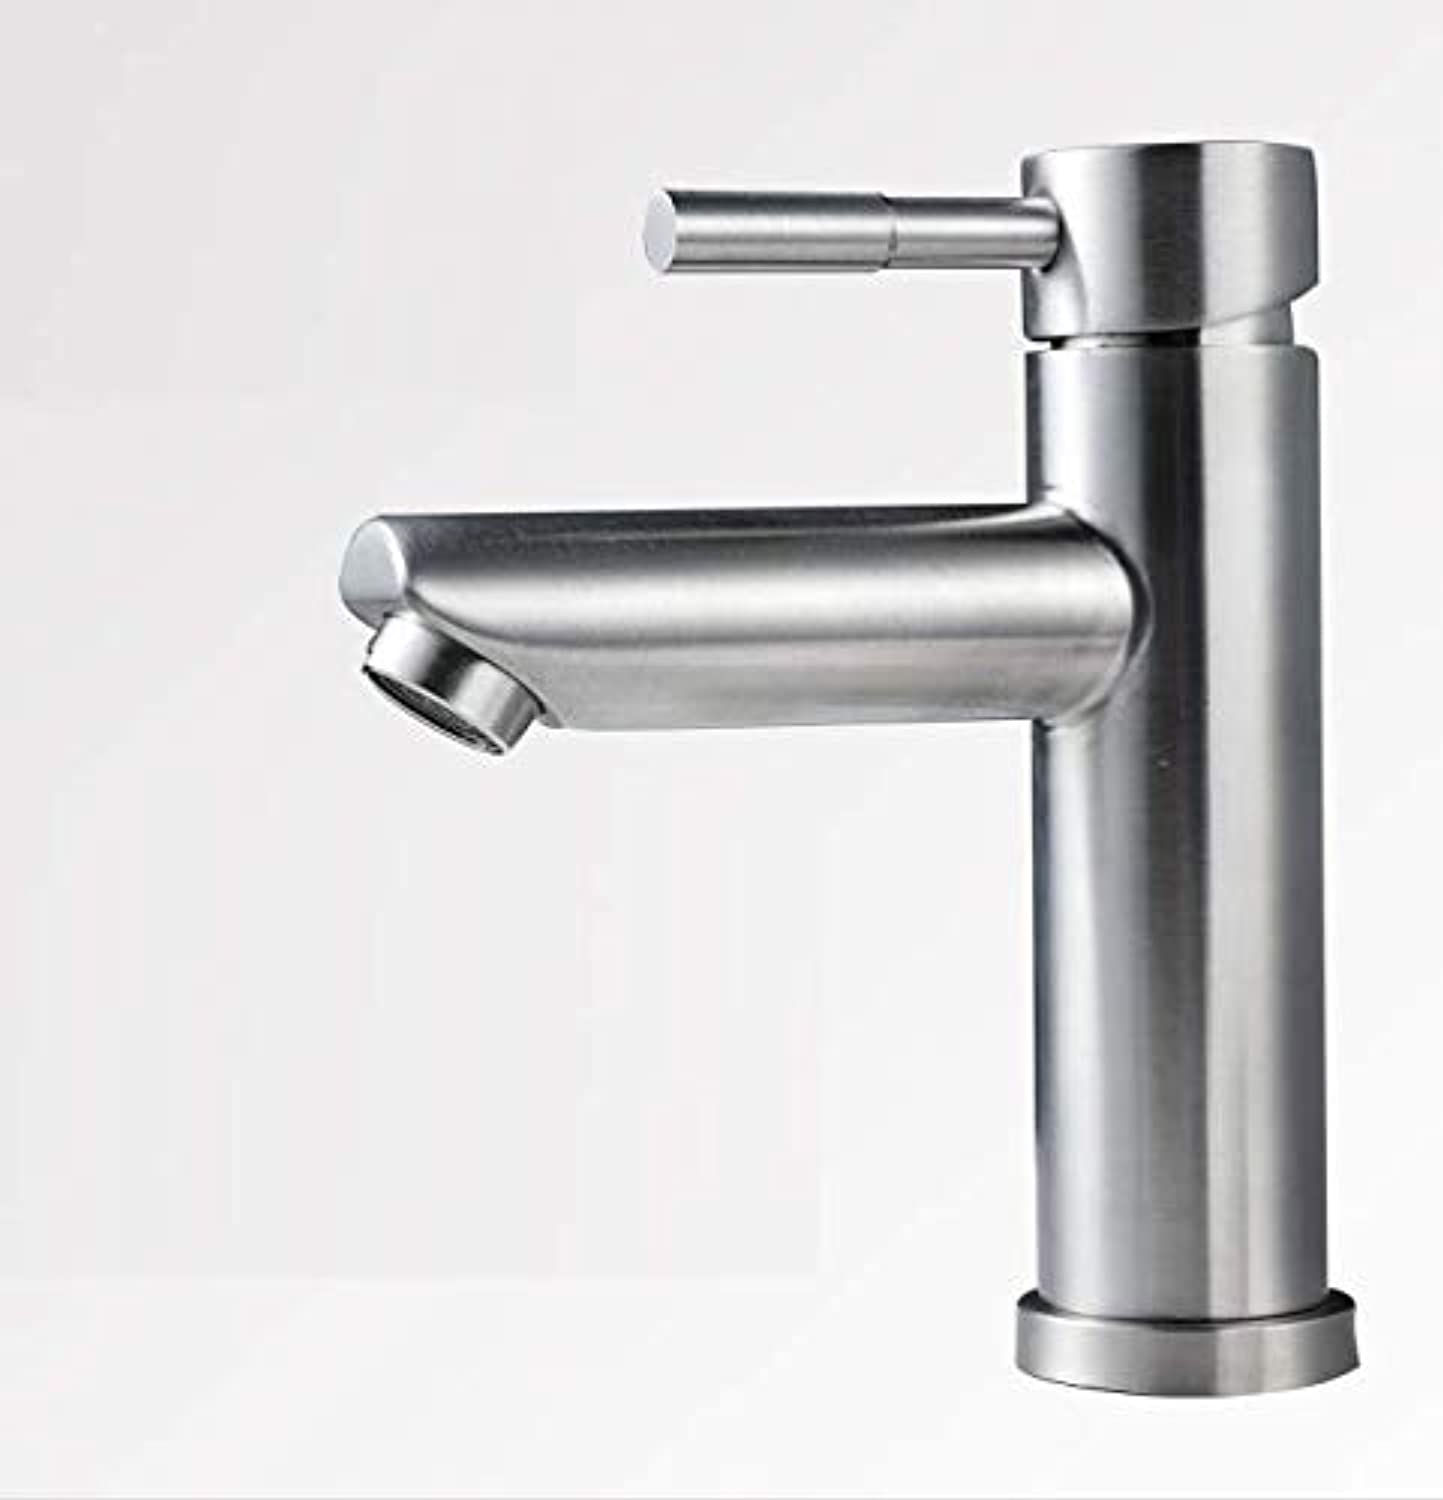 Bathroom Faucet hot and Cold Single Handle Single Hole Bathroom wash Basin Basin Faucet wash Basin Sink Faucet Home